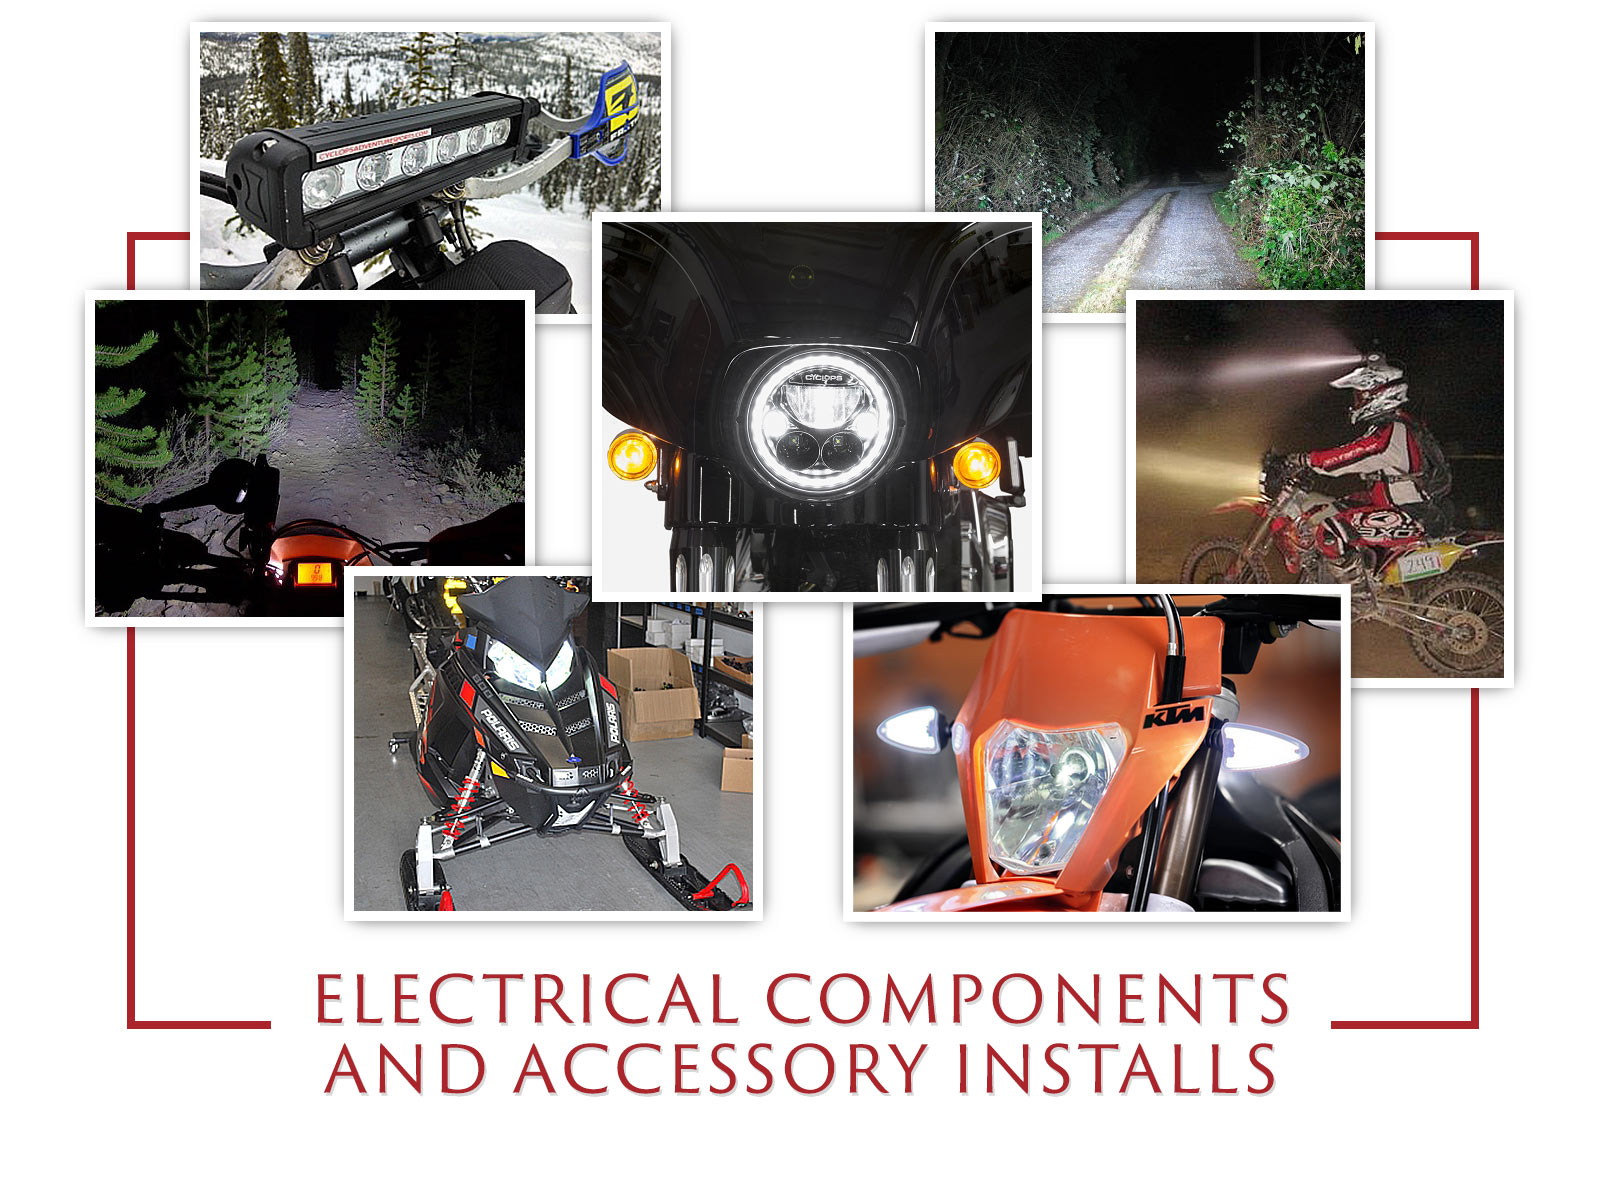 Motorcycle Electrical Components and Accessory Installs